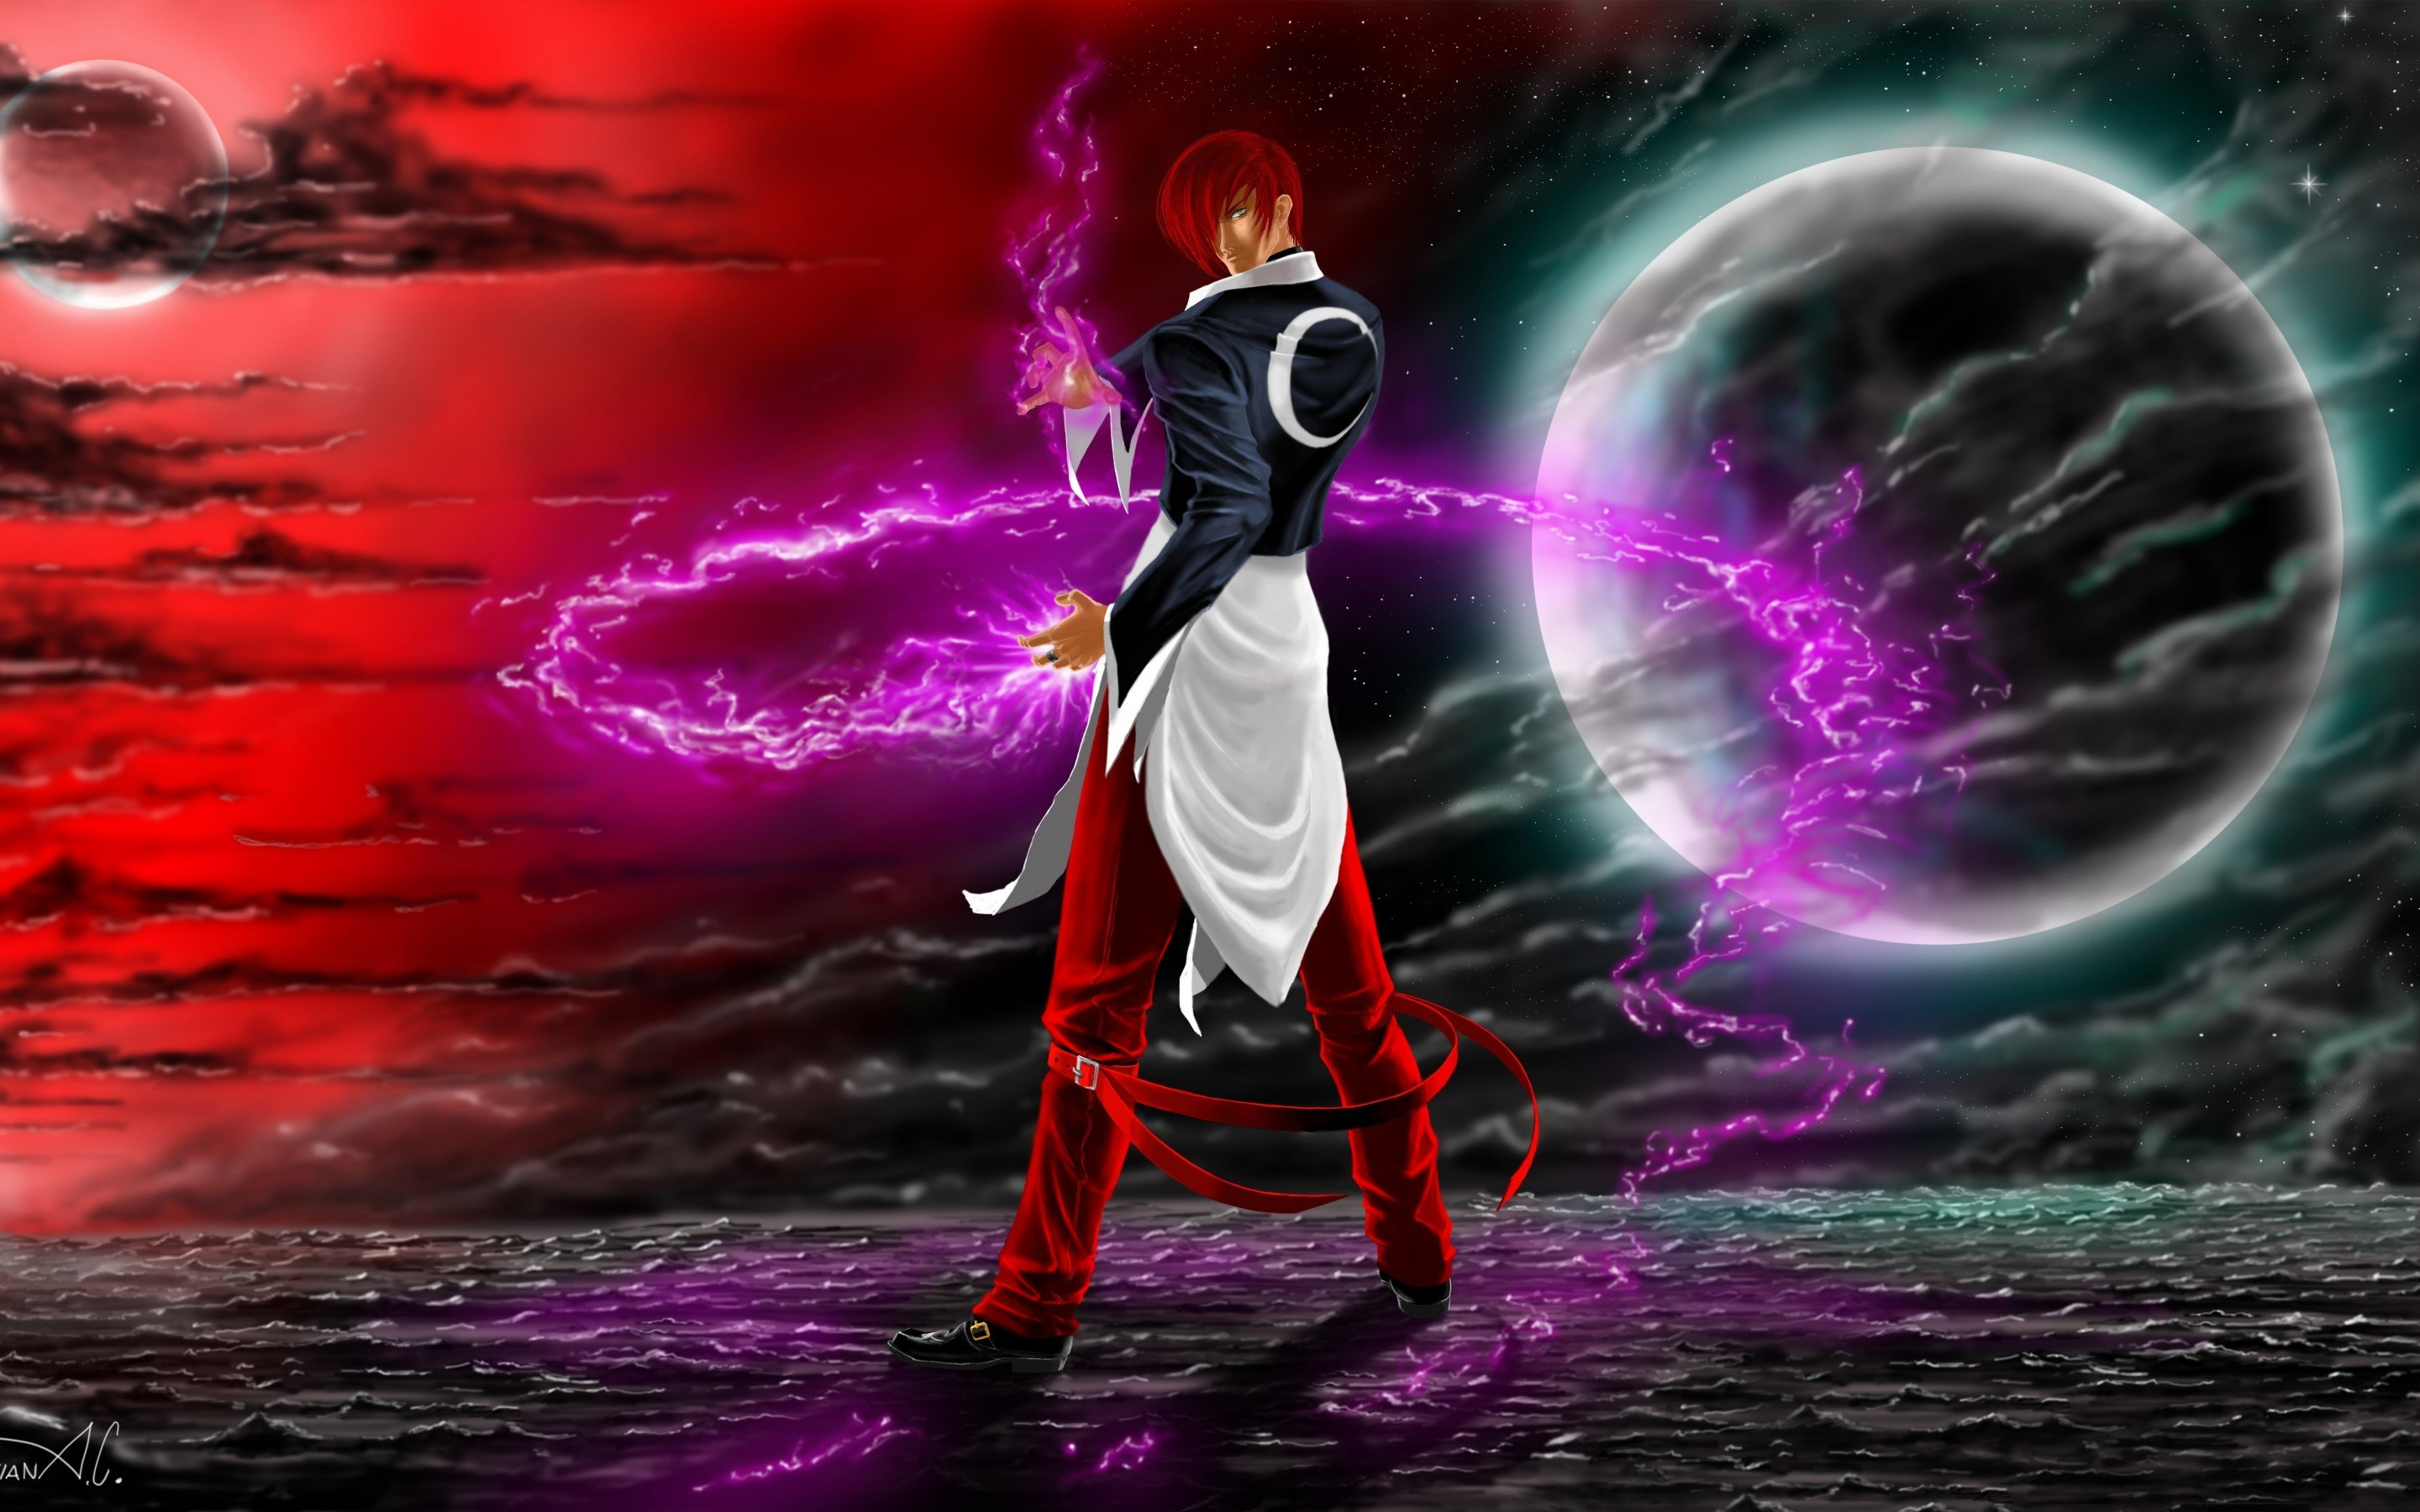 Iori Yagami Wallpapers Download